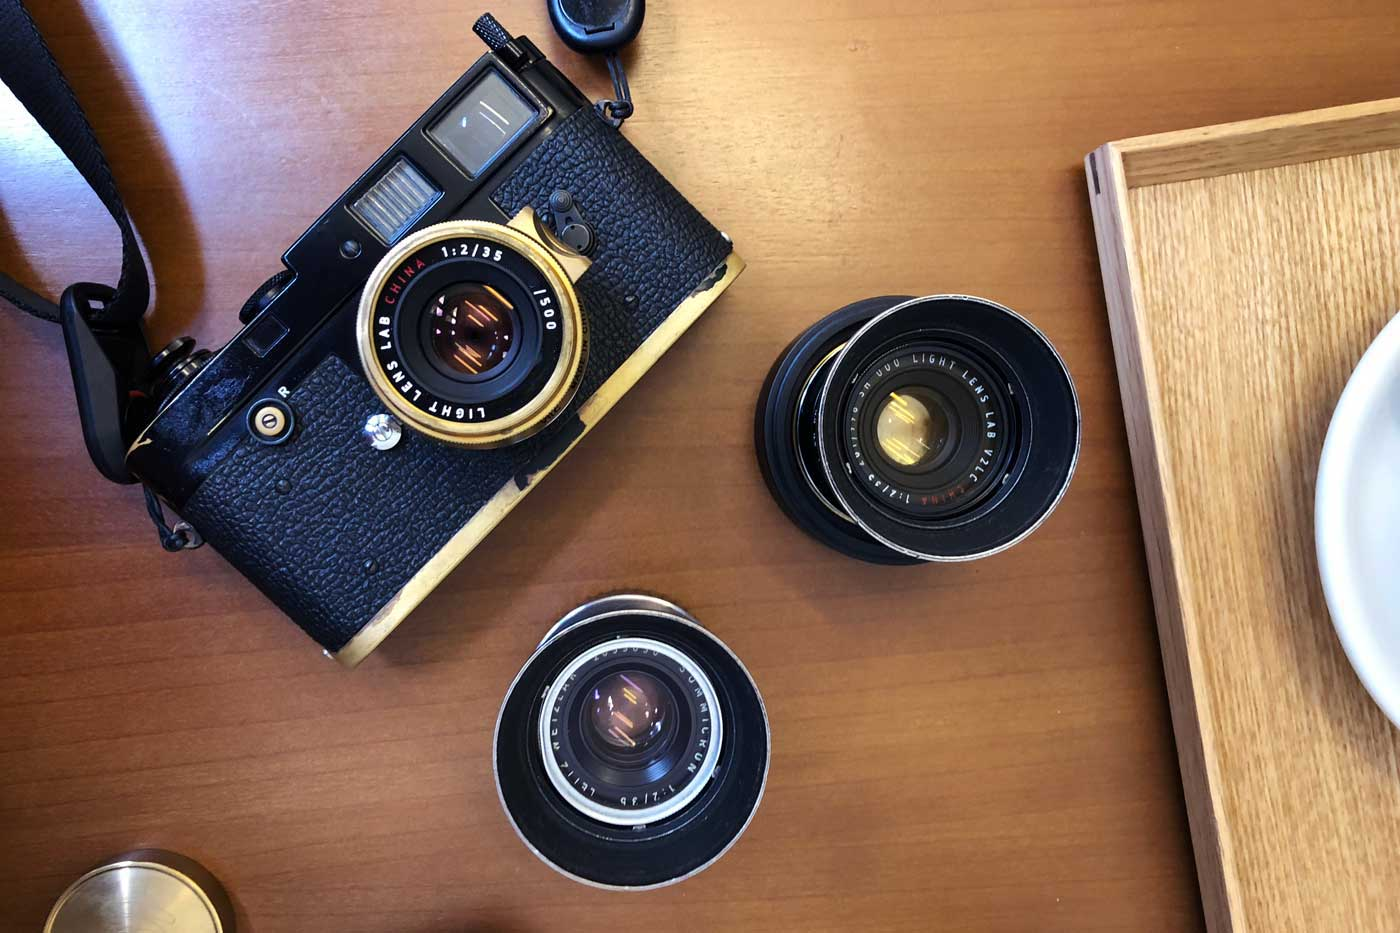 light-lens-lab-35mm-f2-35:2-LLL-Leica-Summicron-2.0-brass-black-paint-m2-brassed-hk-review-lens-lenses-original-8-elements-周八枚coffee-versions-irooa-hood-coating-amber